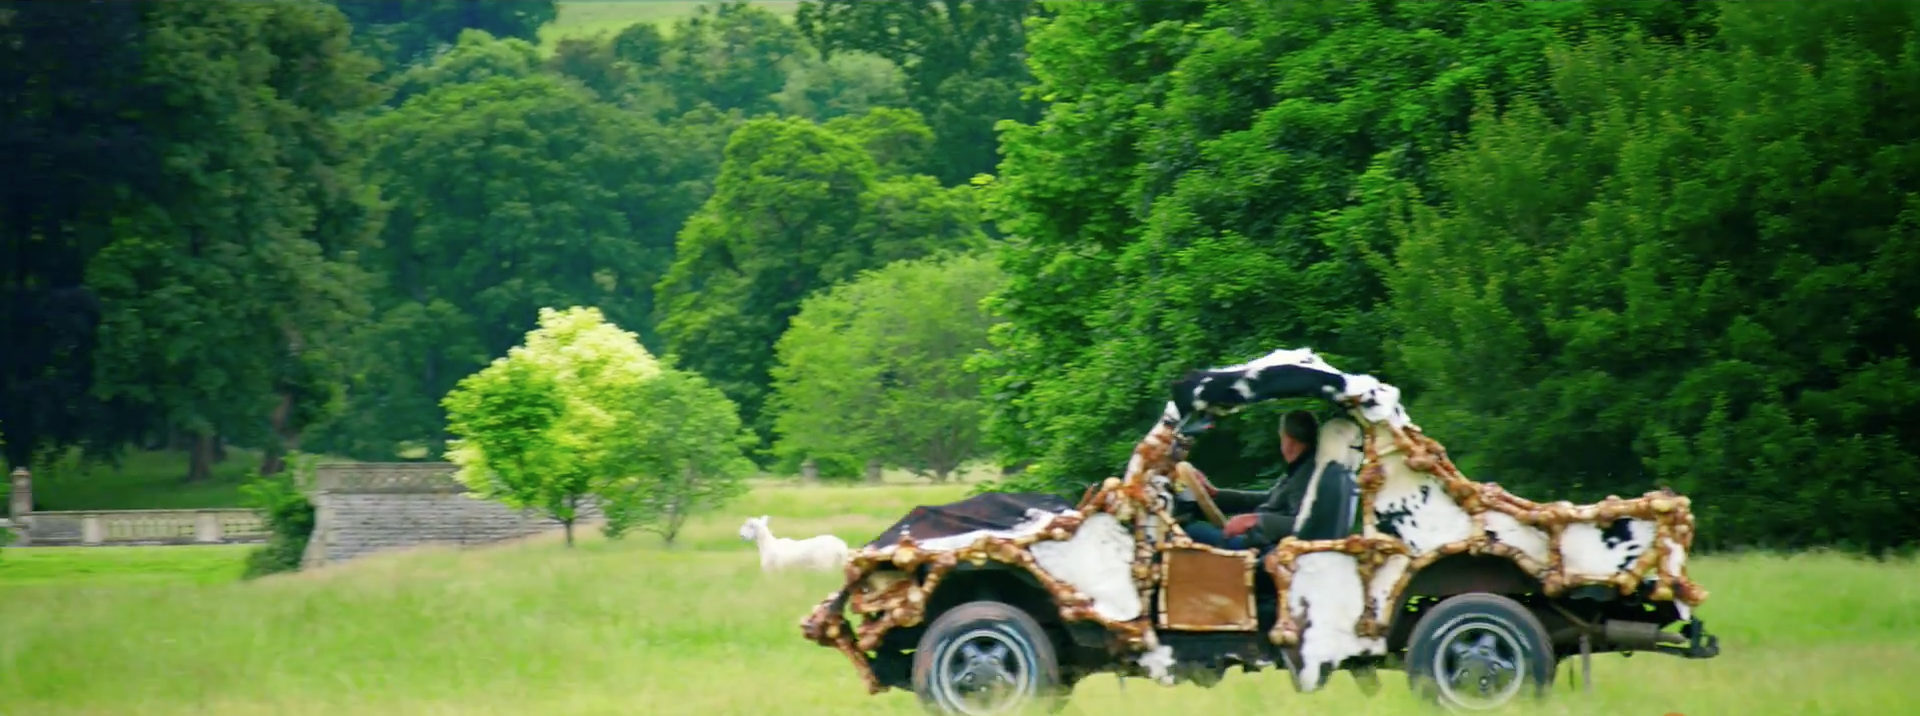 Clarkson And Co Go 'Enviro-mental' In Grand Tour Episode Four